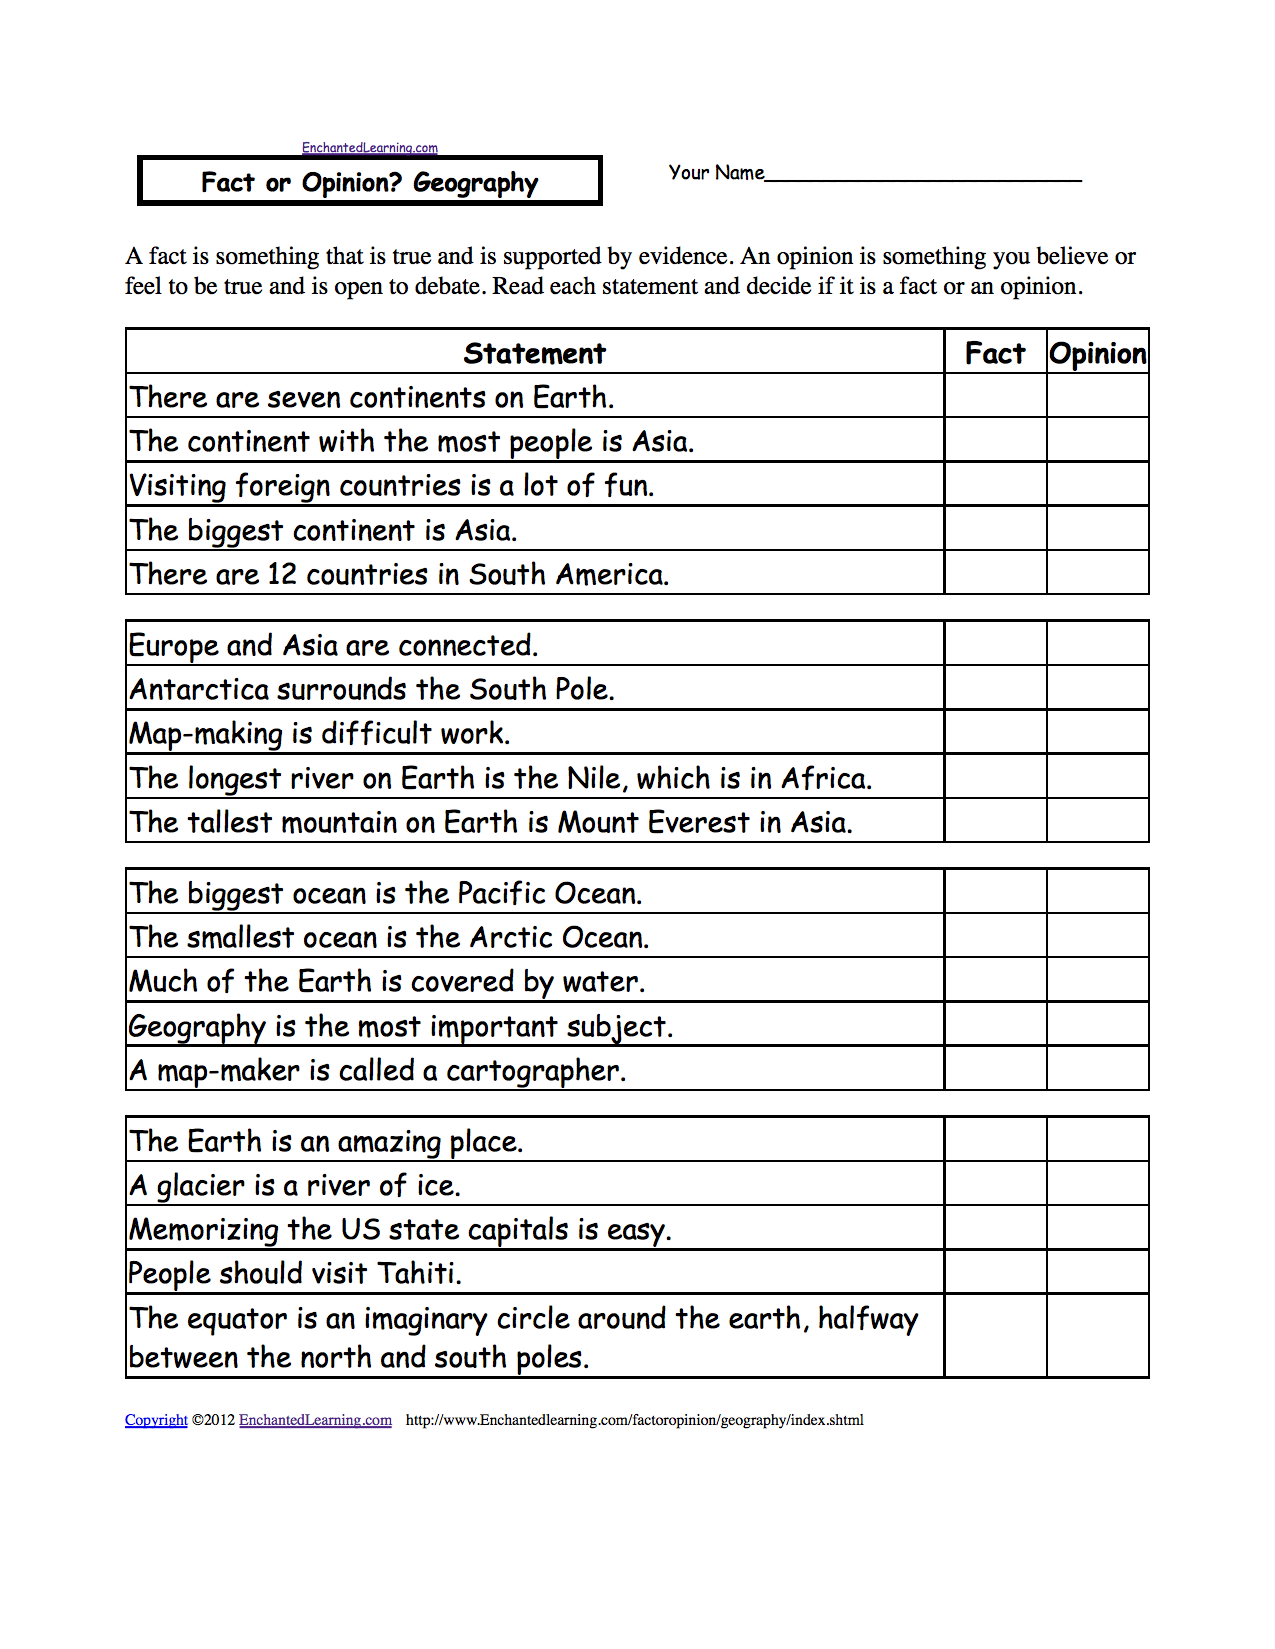 five themes of geography worksheet Google Search – 5 Themes of Geography Worksheets